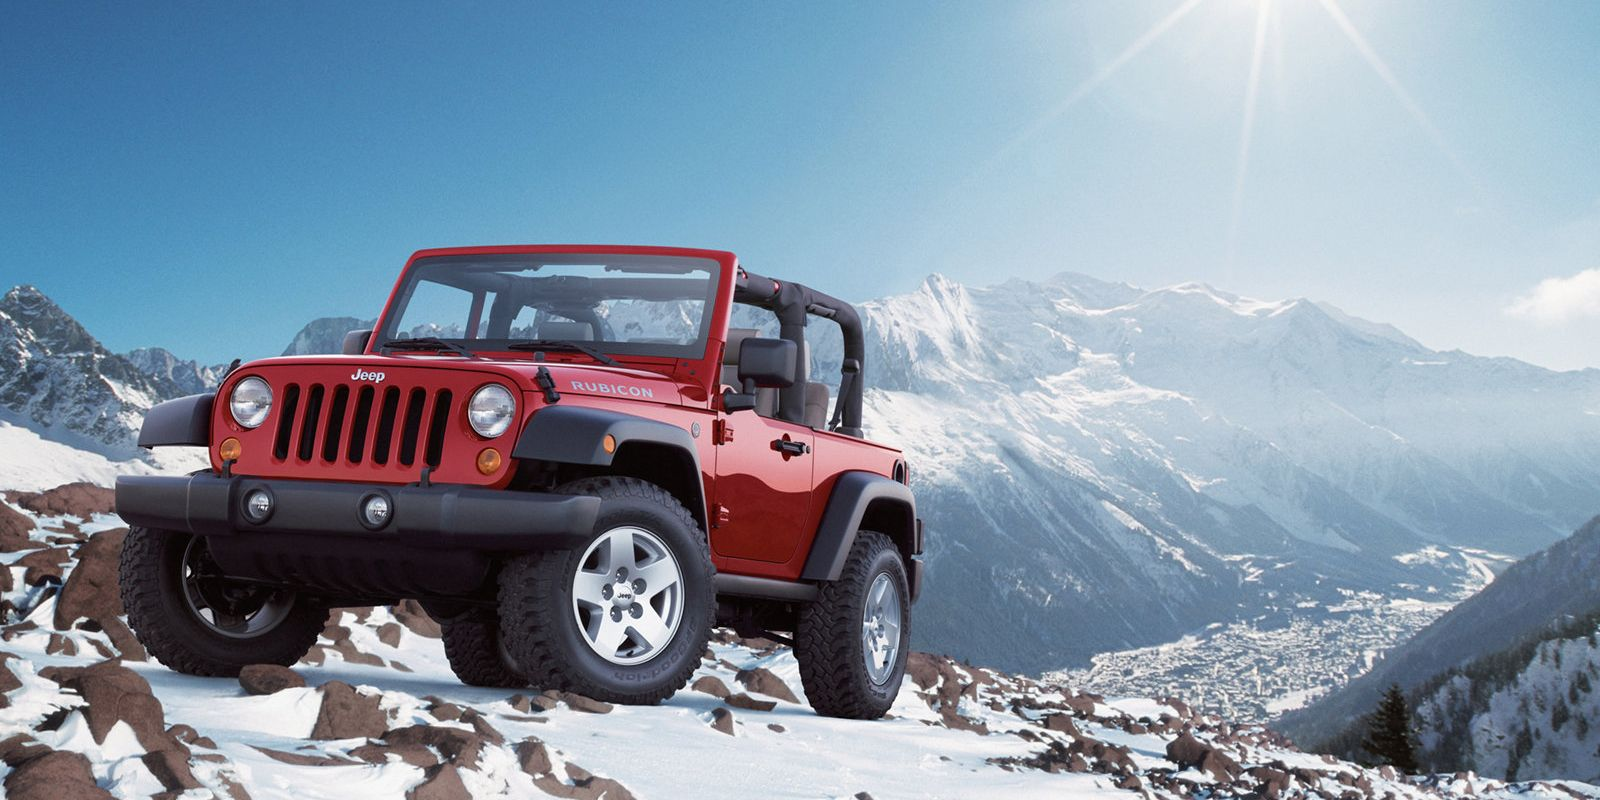 Difference Between Wrangler Models >> 9 Slowest Depreciation Cars - Cars That Hold the Most Value After 1 Year